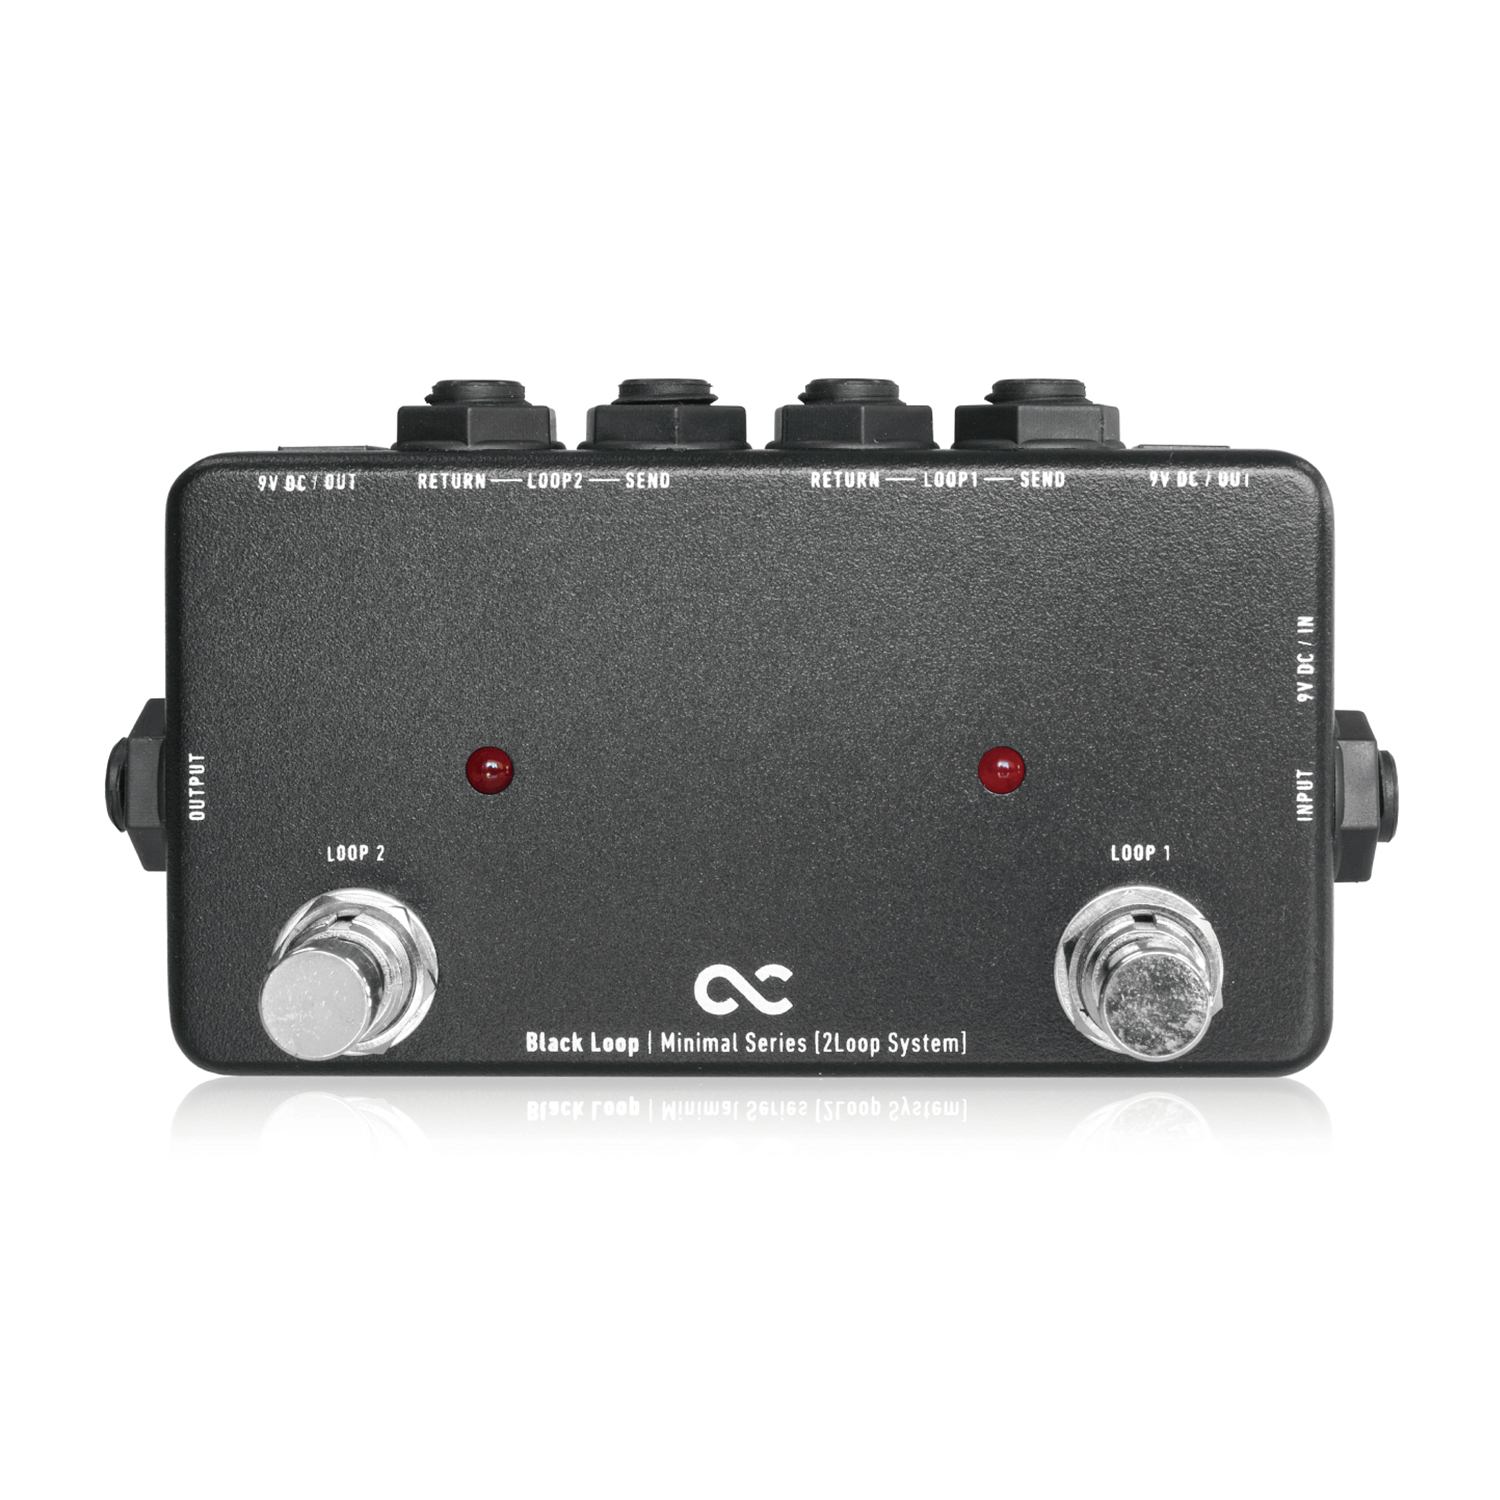 Japan One Control Black Guitar Effect Pedal True Bypass Line Selector Switching DC Outs Loop 2 mooer ensemble queen bass chorus effect pedal mini guitar effects true bypass with free connector and footswitch topper